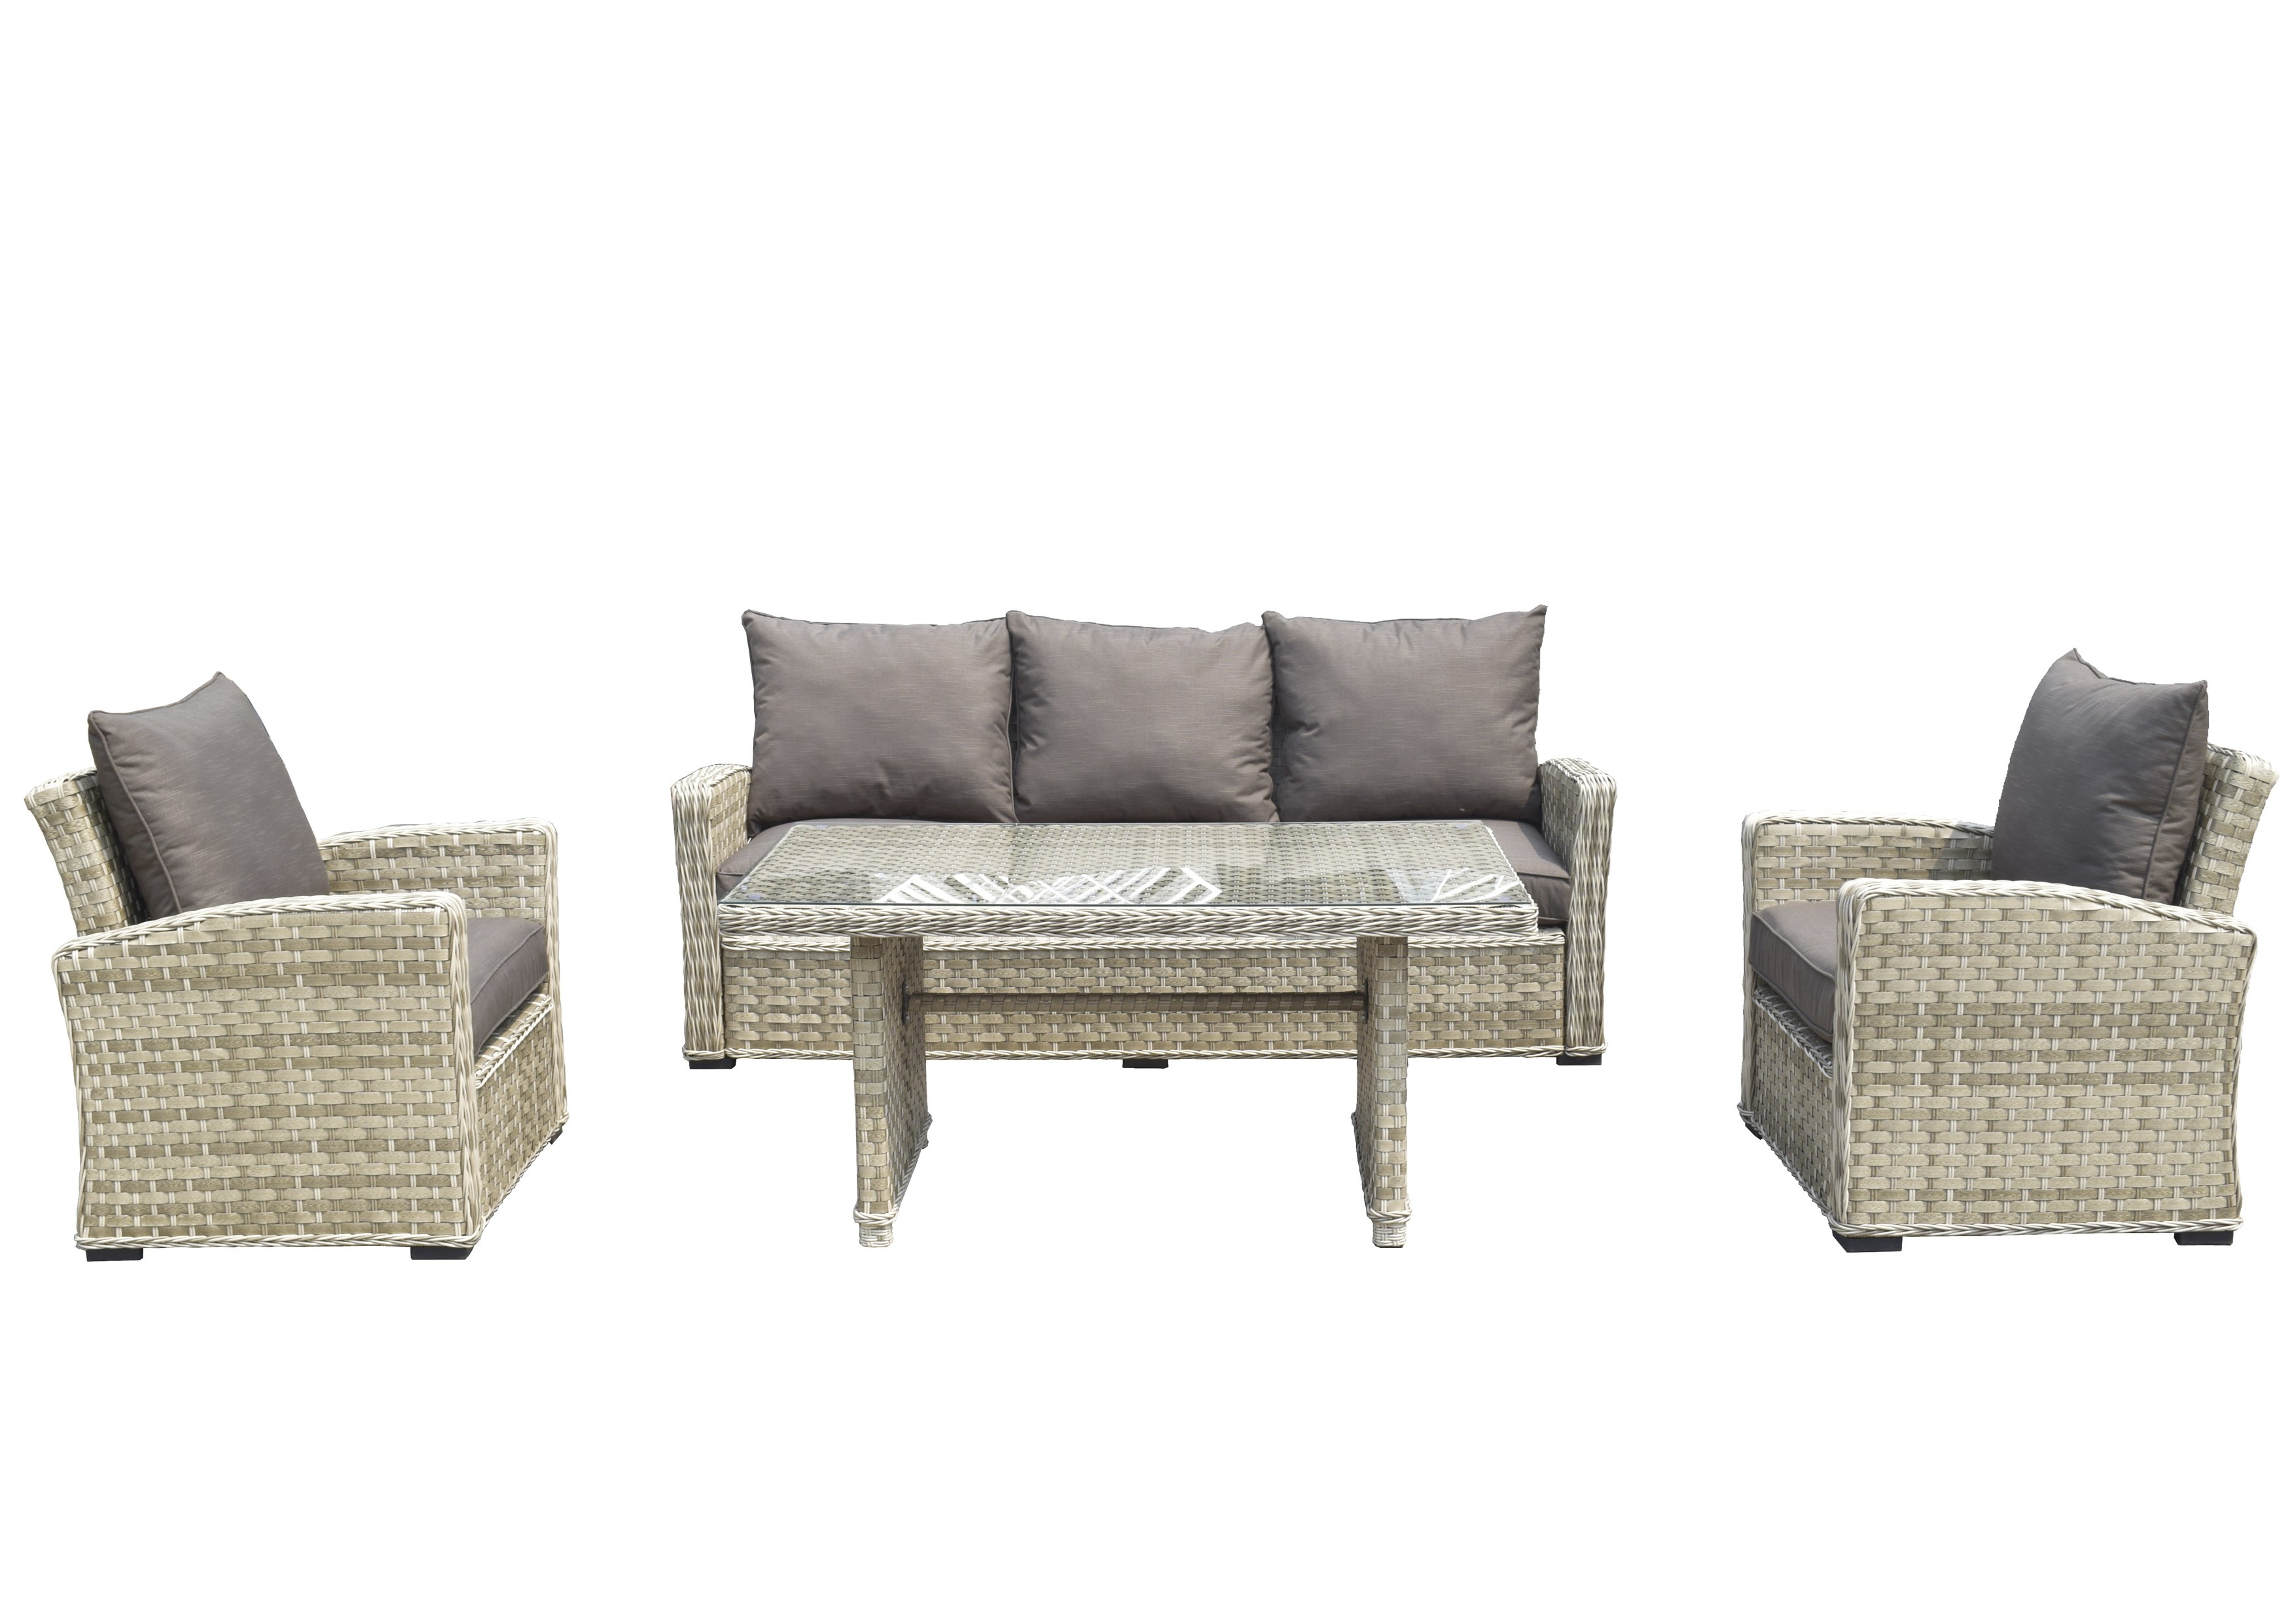 Furniture For Modern Living – Furniture For Modern Living Regarding Grace Sofa Chairs (Image 2 of 20)